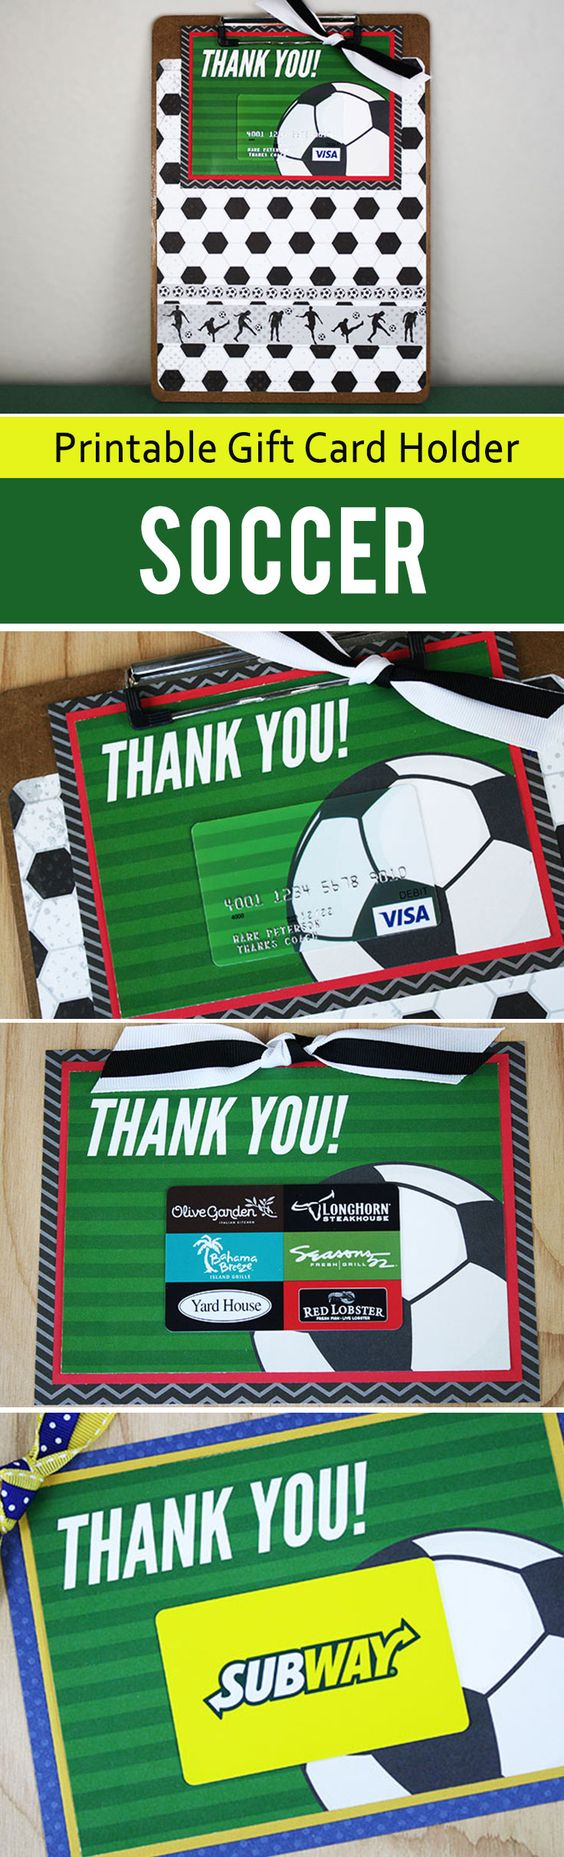 This free printable soccer coach gift card makes for an easy game-winning gift. Print the gift card holder and select a card from the store or order the matching soccer ball gift card online.